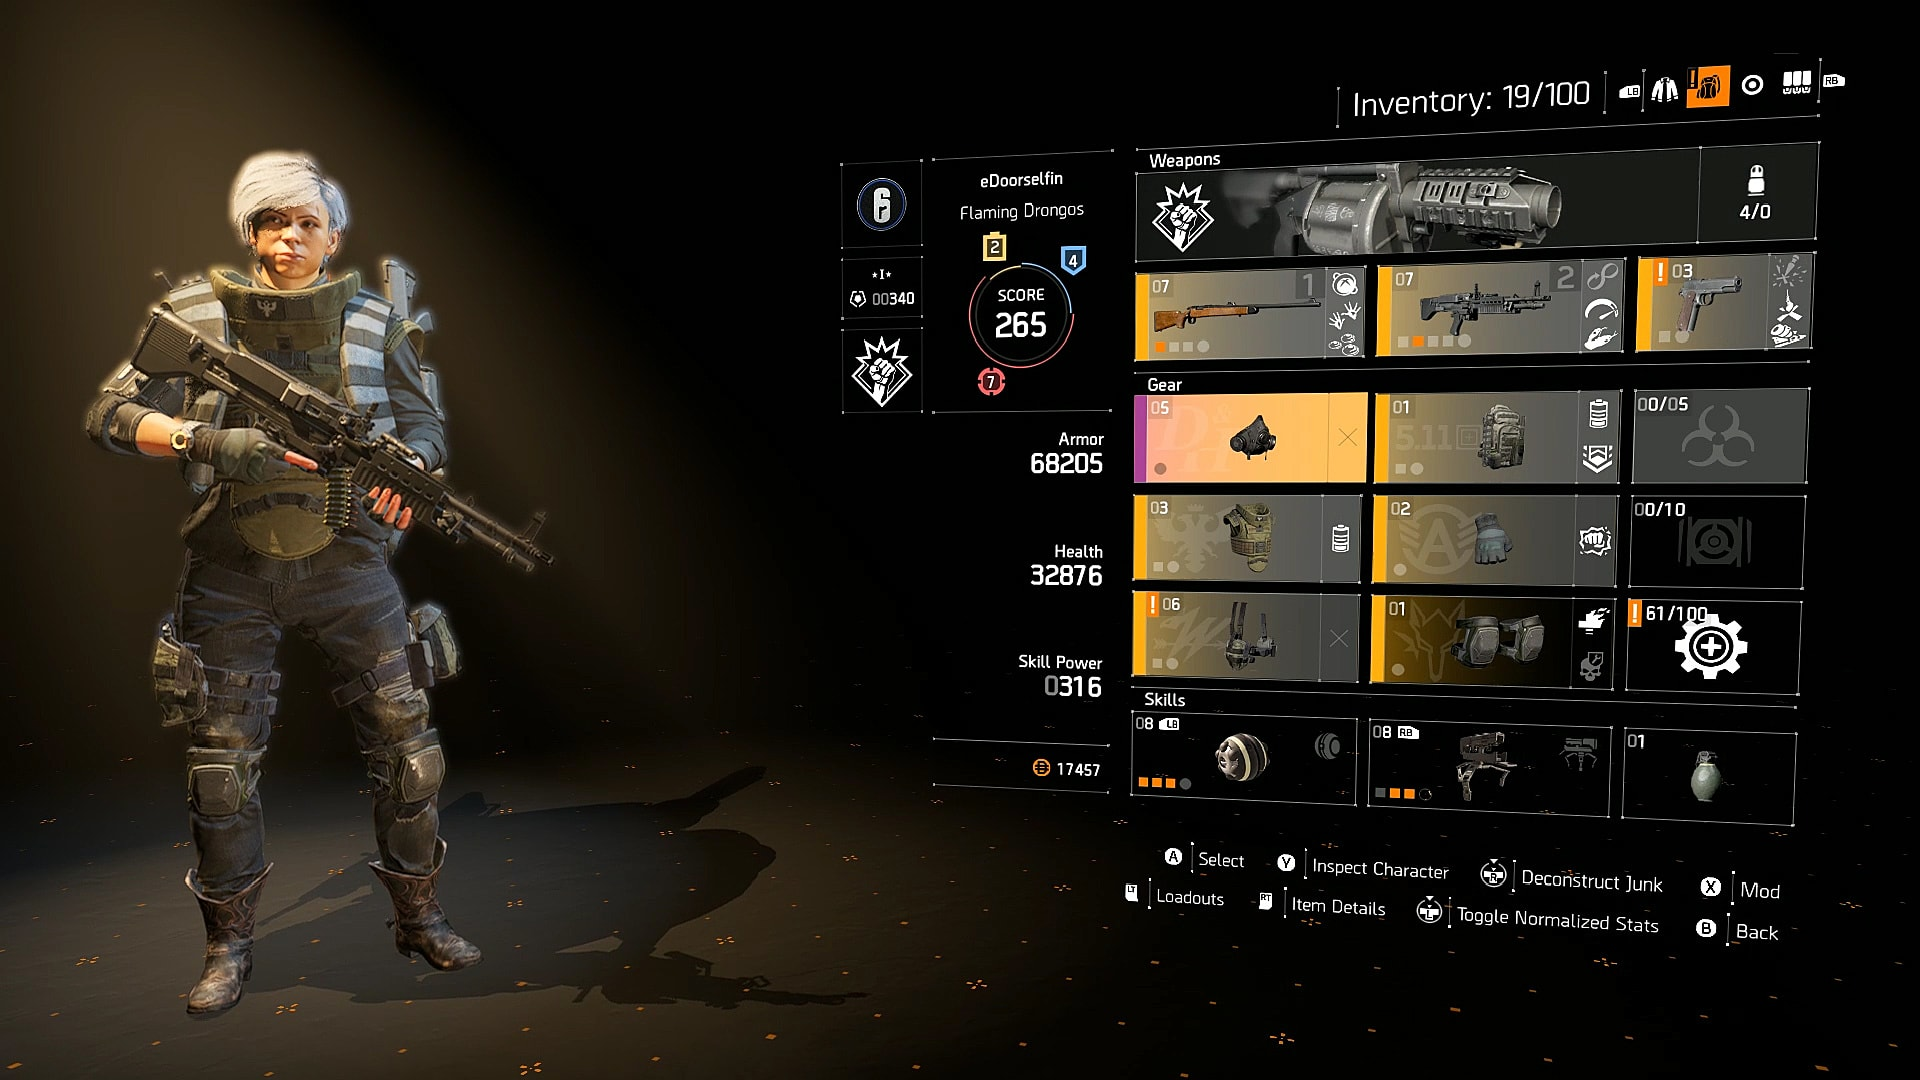 Ubisoft Fixes The Division 2 Skill Bug, But Problems Remain